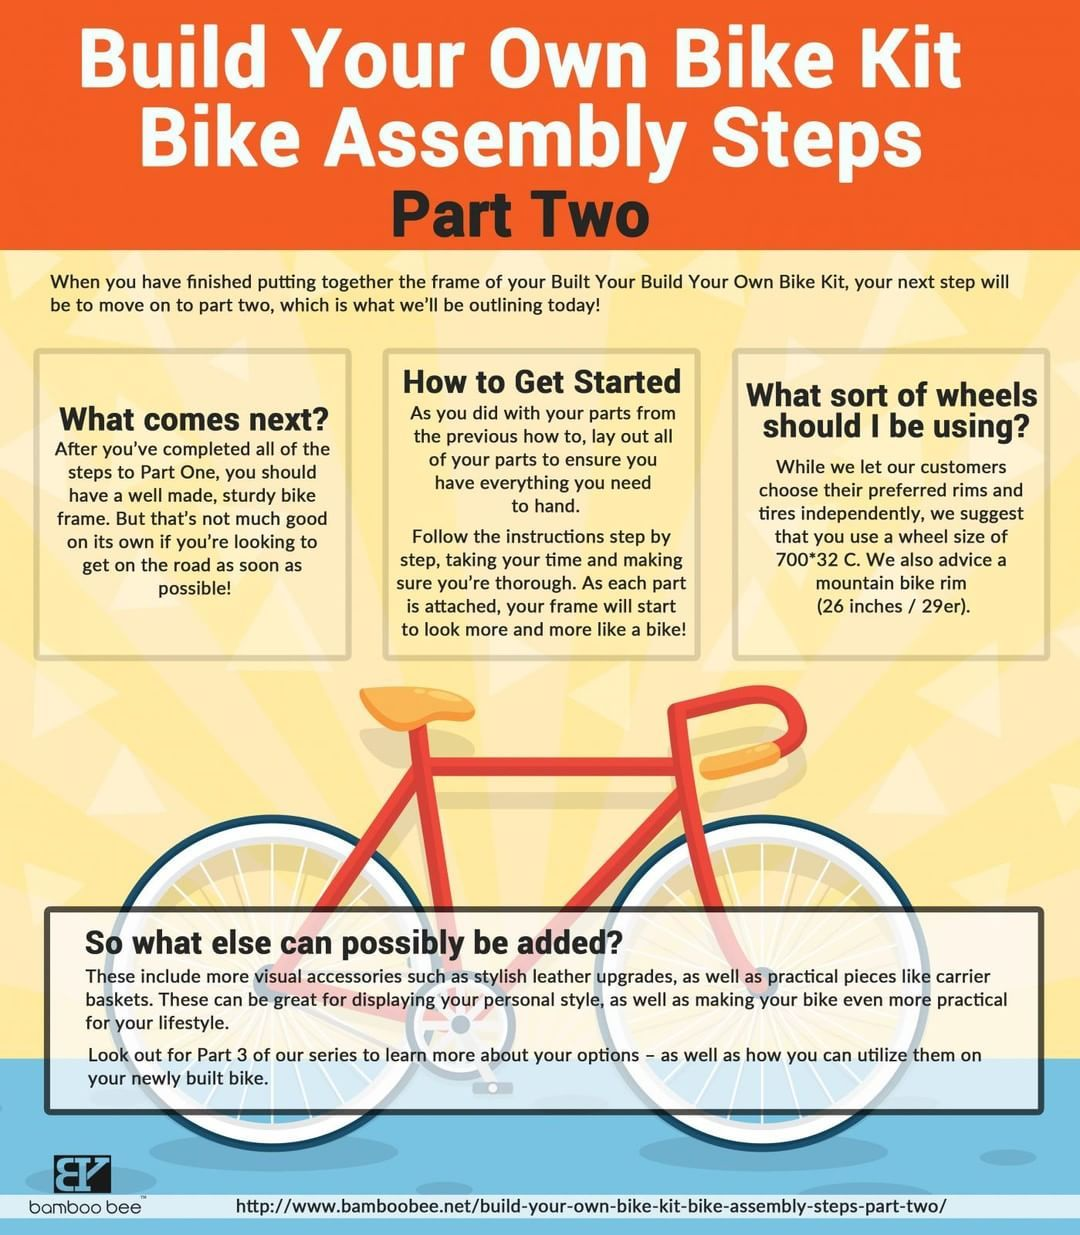 How To Build Your Own Bike Kit Bike Assembly Part 2 Build Your Own Bike Bike Kit Bamboo Bicycle